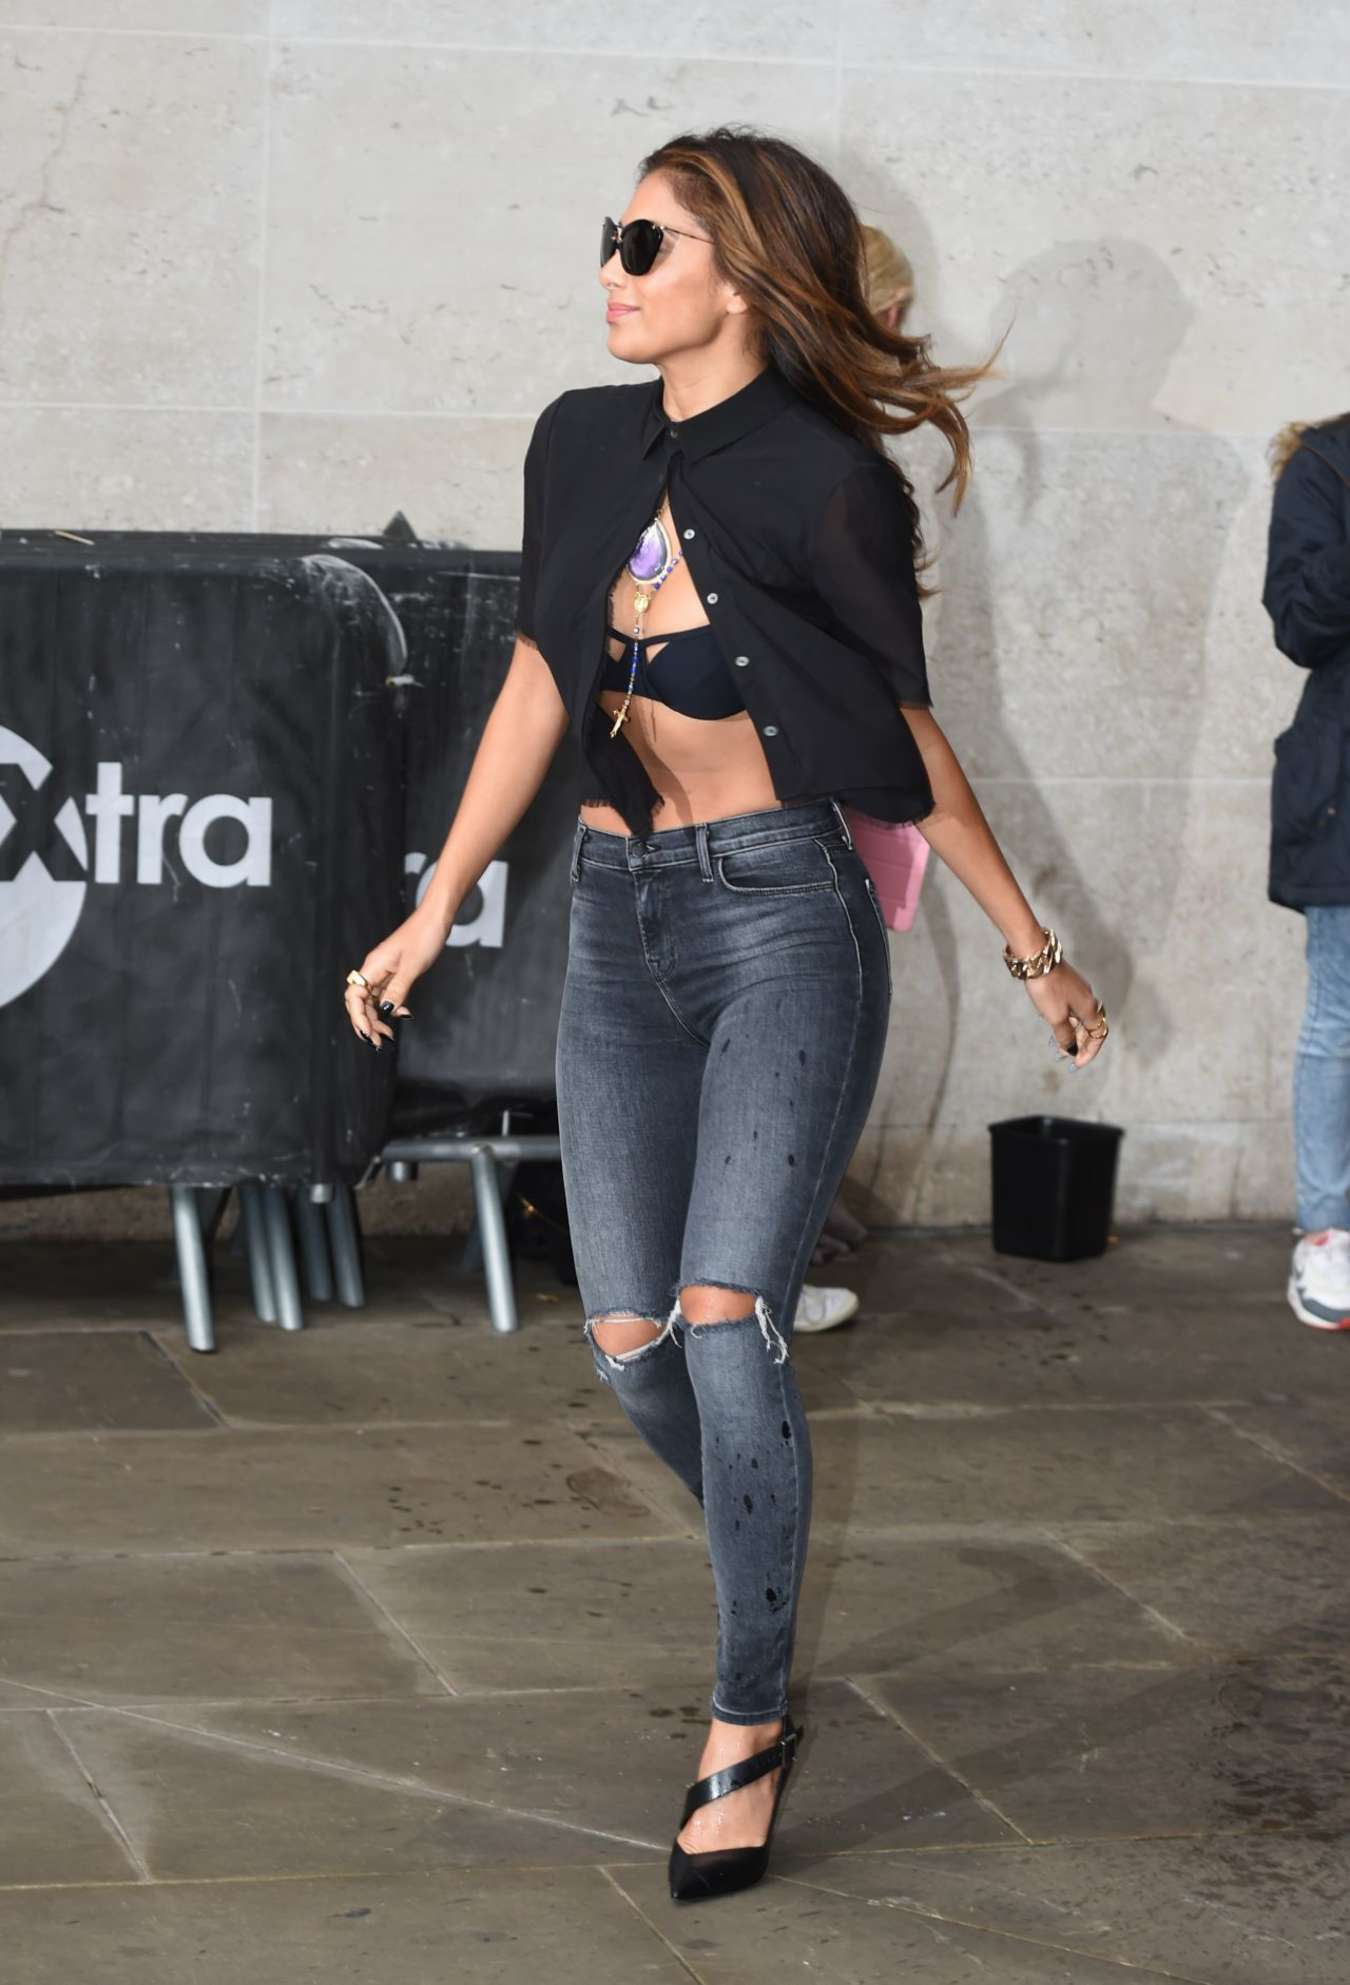 Nicole Scherzinger - Doses a Fan With Iced Water for Charity in London